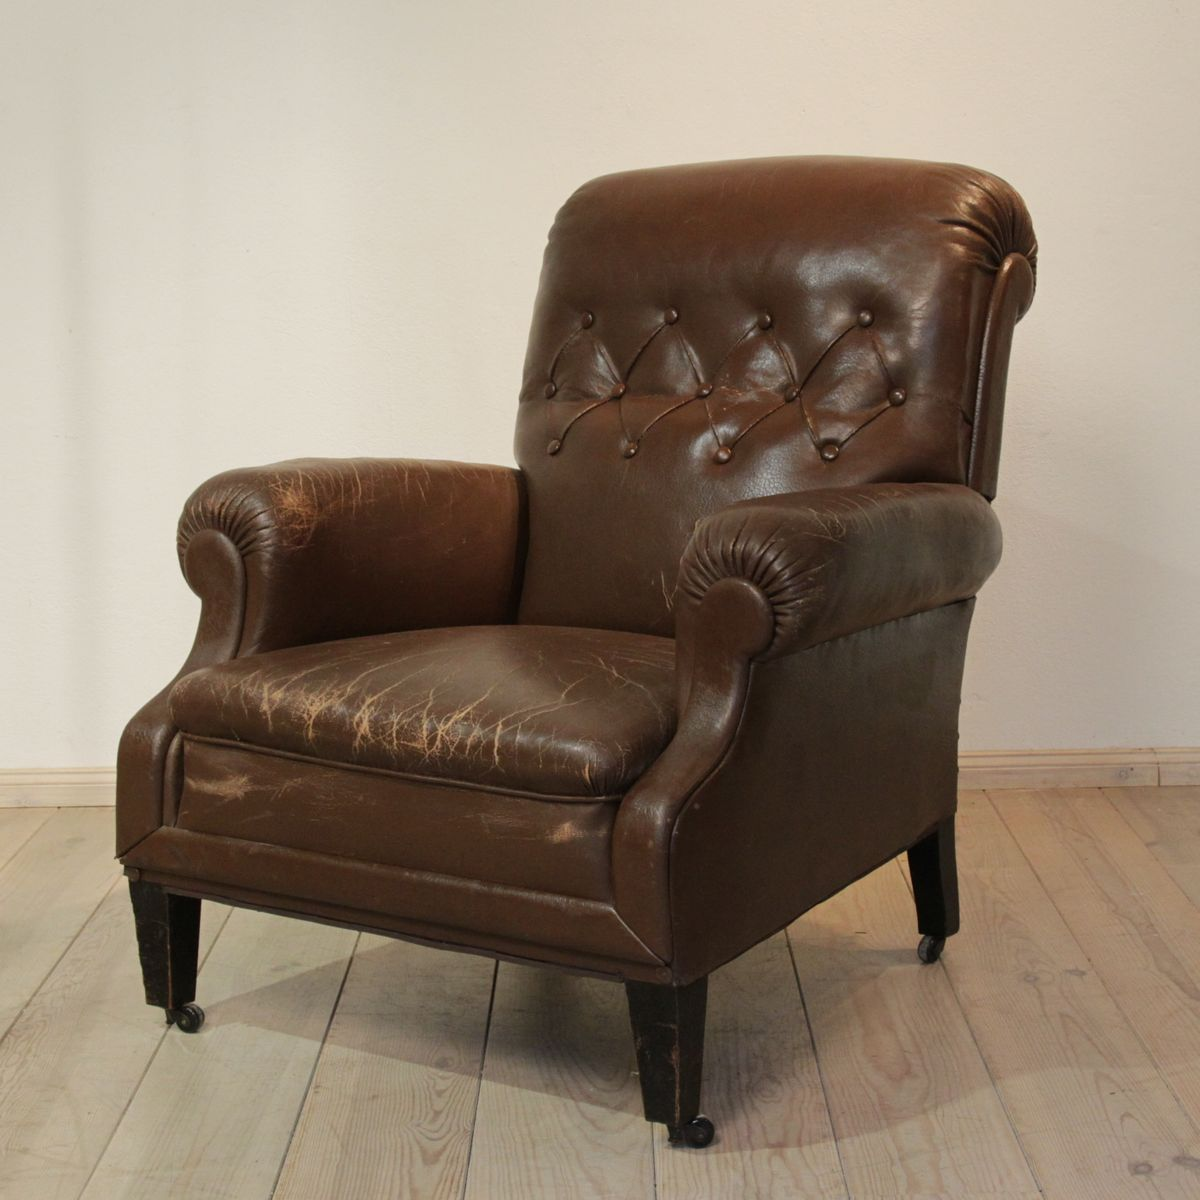 leather chair from berlin staatsbibliothek 1930s for sale. Black Bedroom Furniture Sets. Home Design Ideas